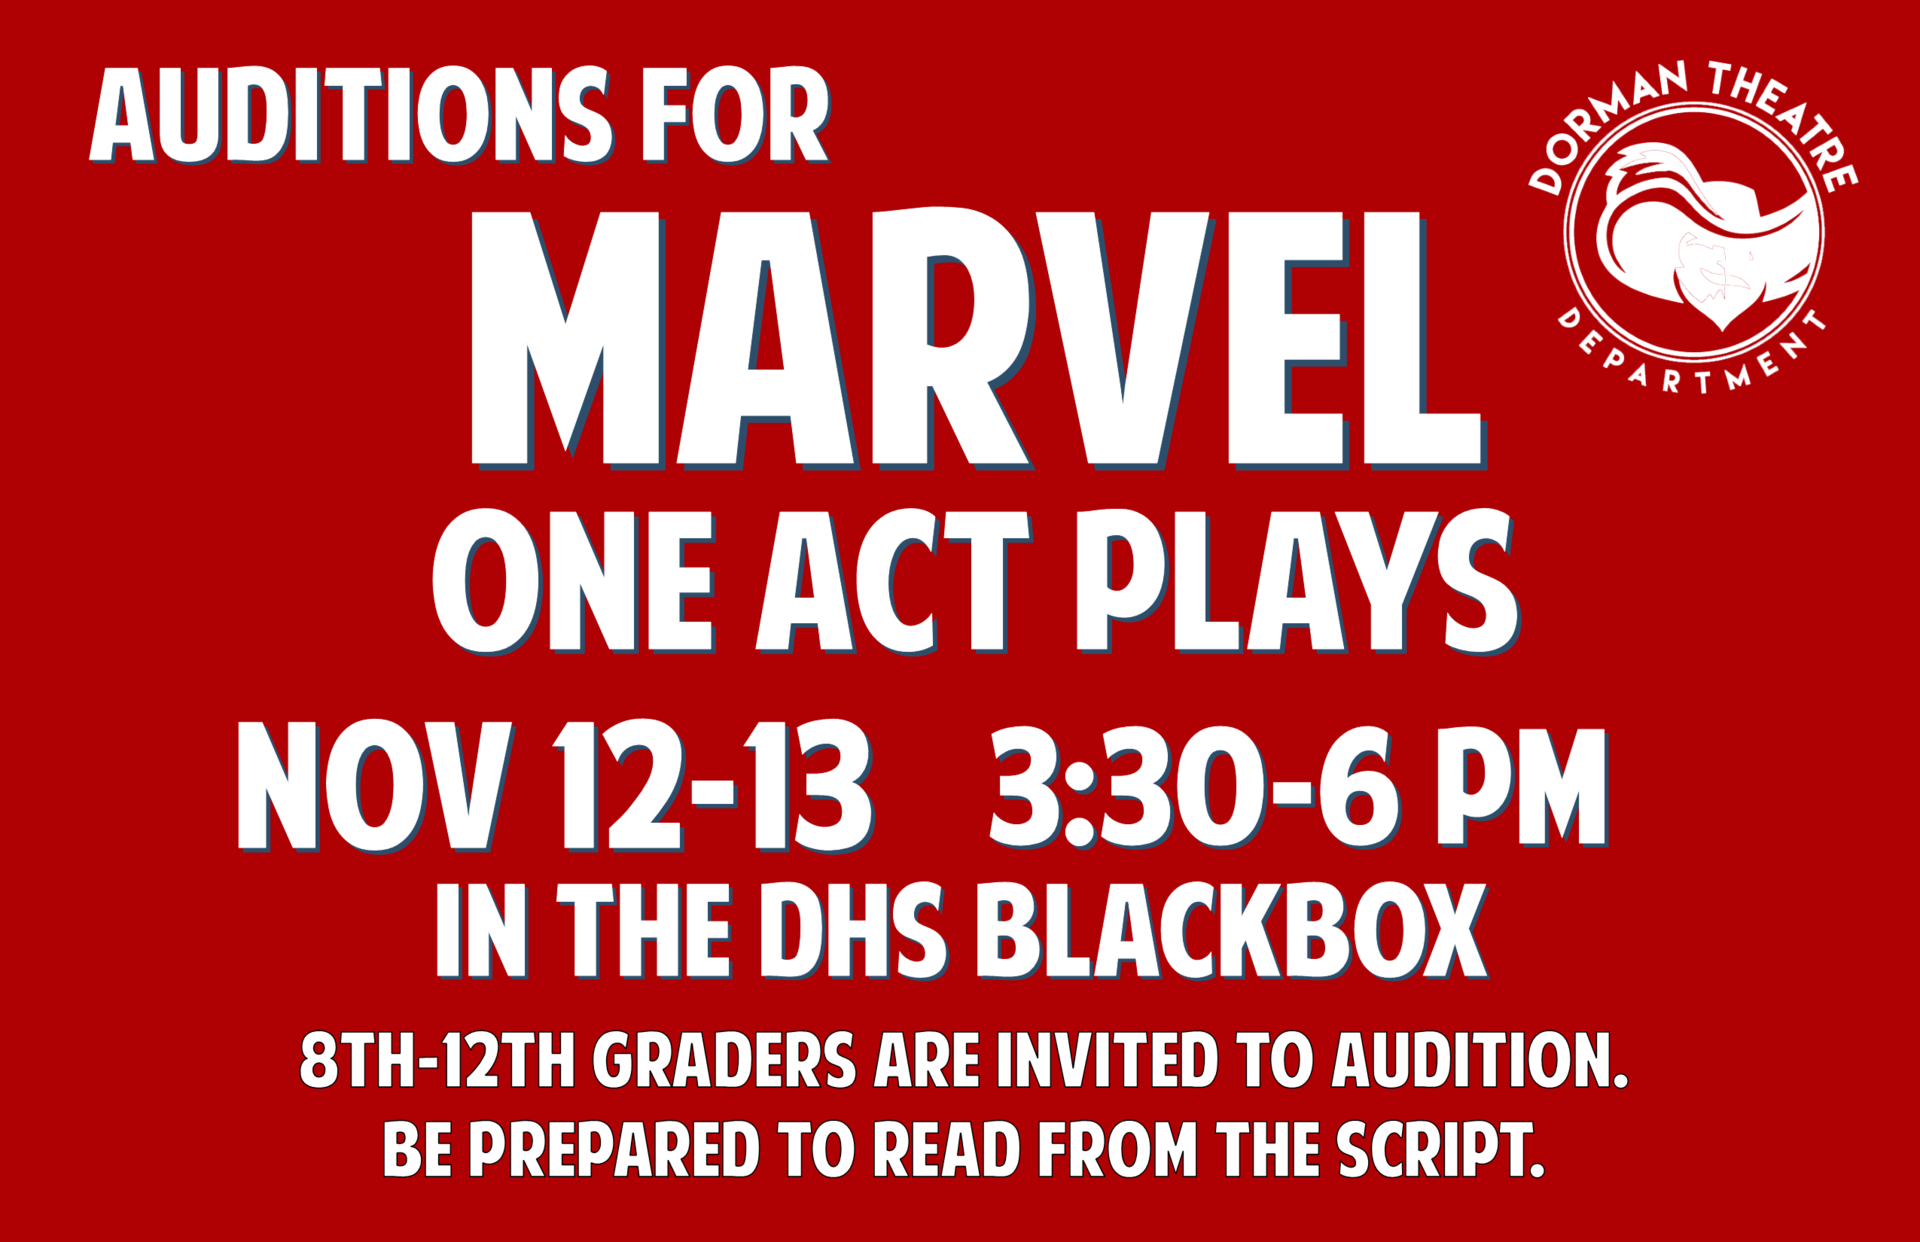 Marvel auditions